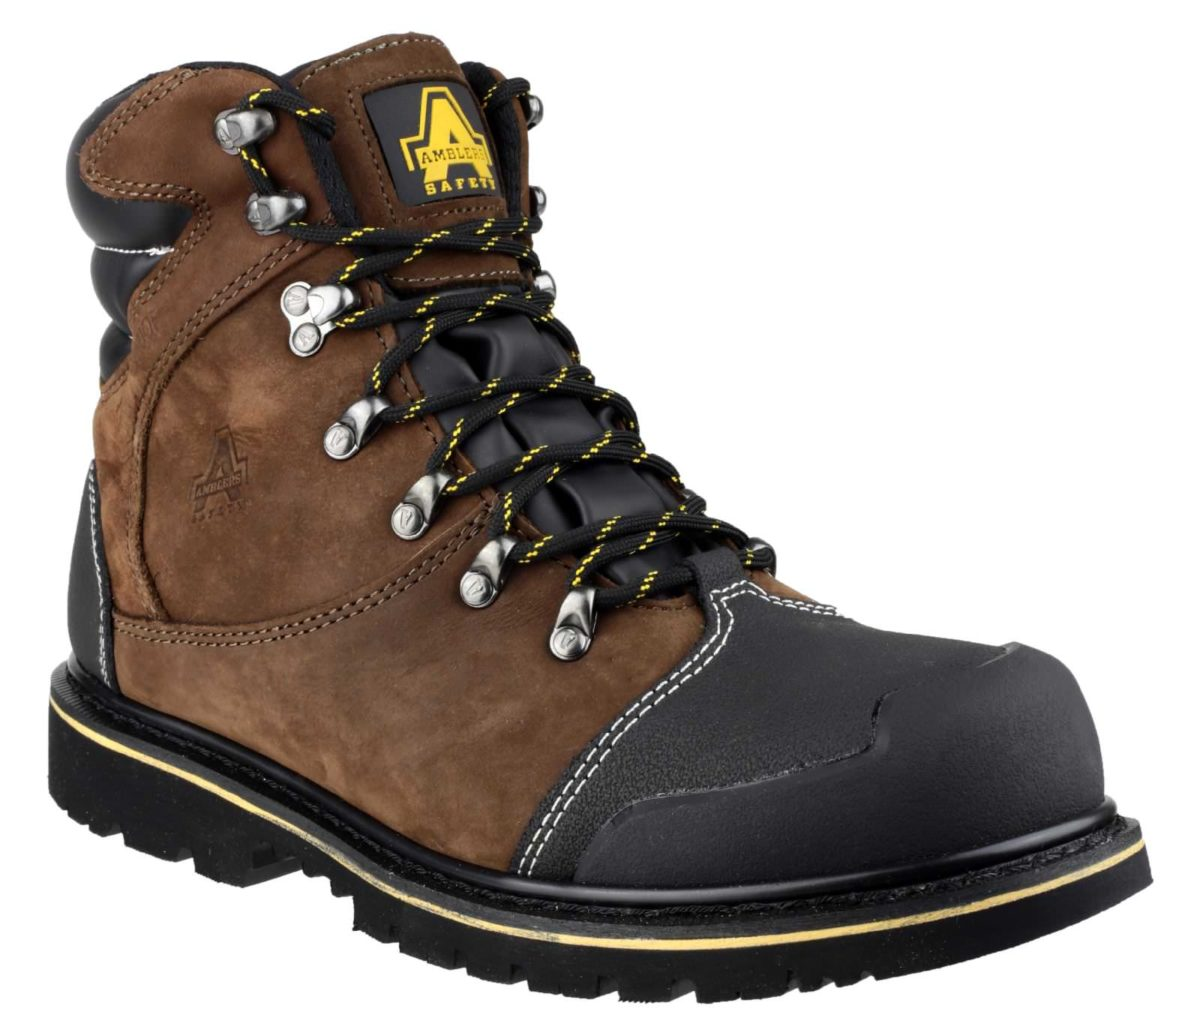 Amblers FS227 Waterproof Safety Boot